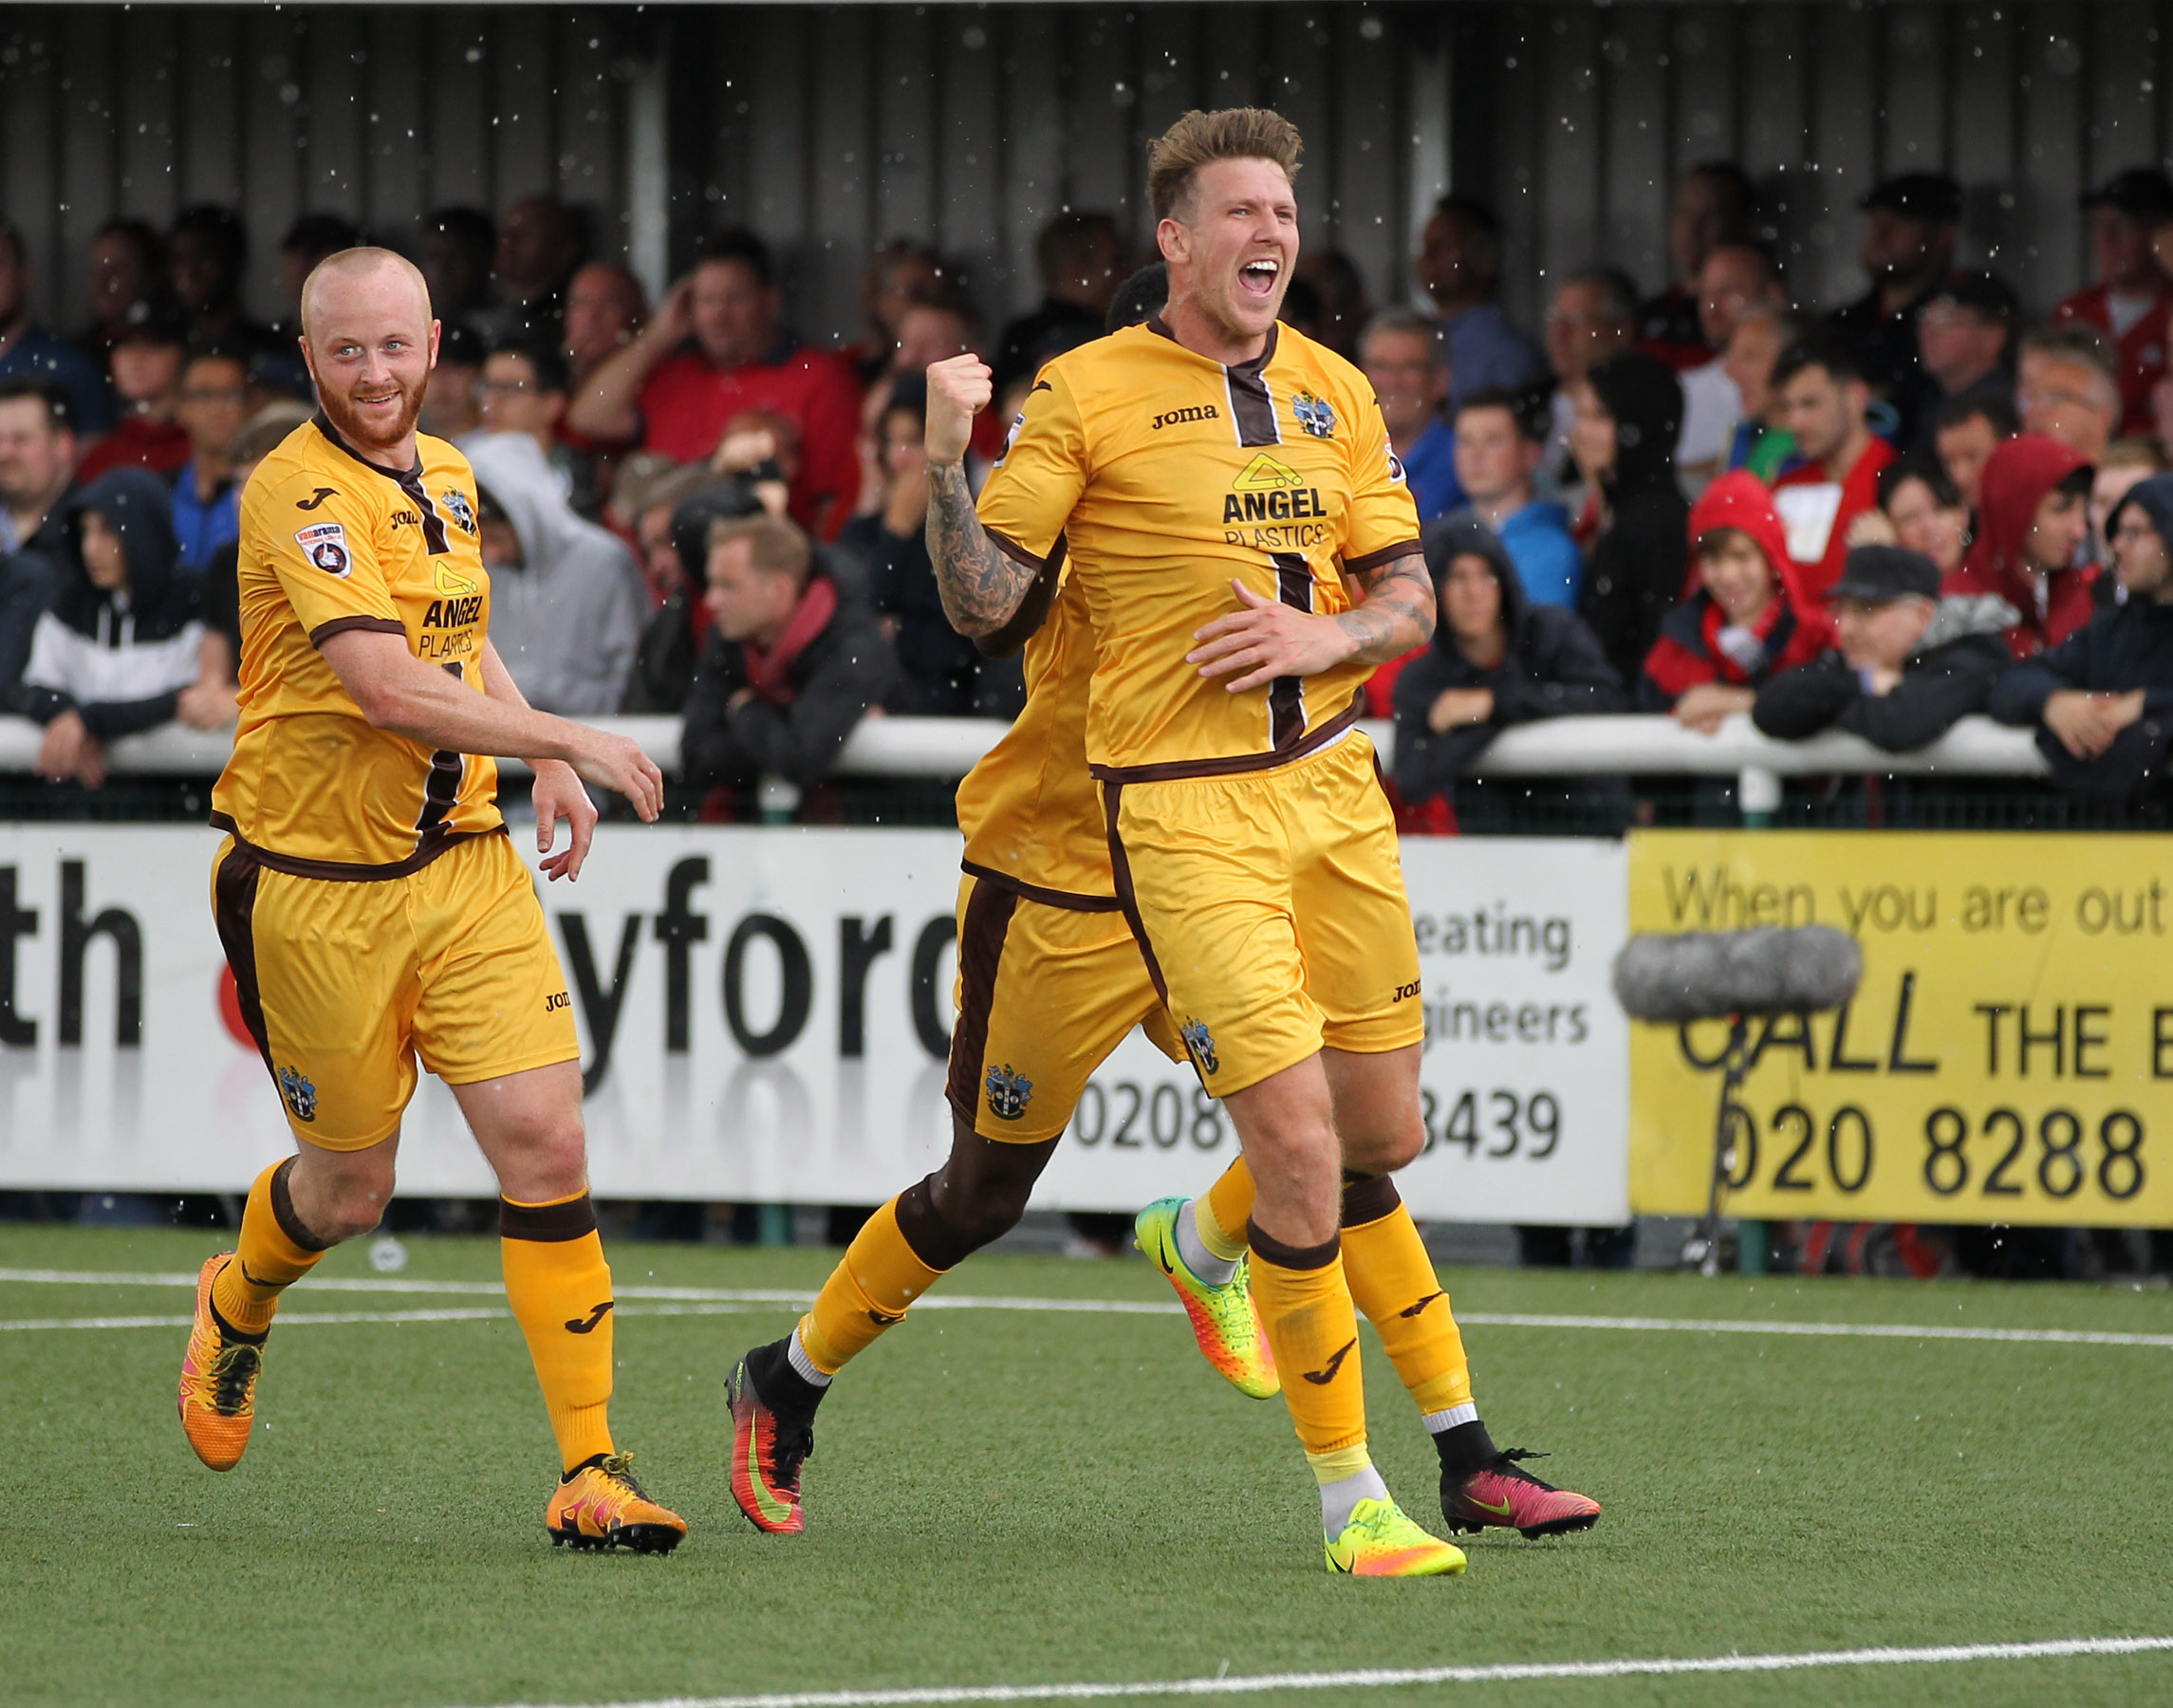 Kenny Davis, Kieron Cadogan (hidden) and Dean Beckwith celebrate Sutton United's second goal in their 2-0 victory over Leyton Orient in August, the last time the U's featured live on BT Sport. Picture: Paul Loughlin